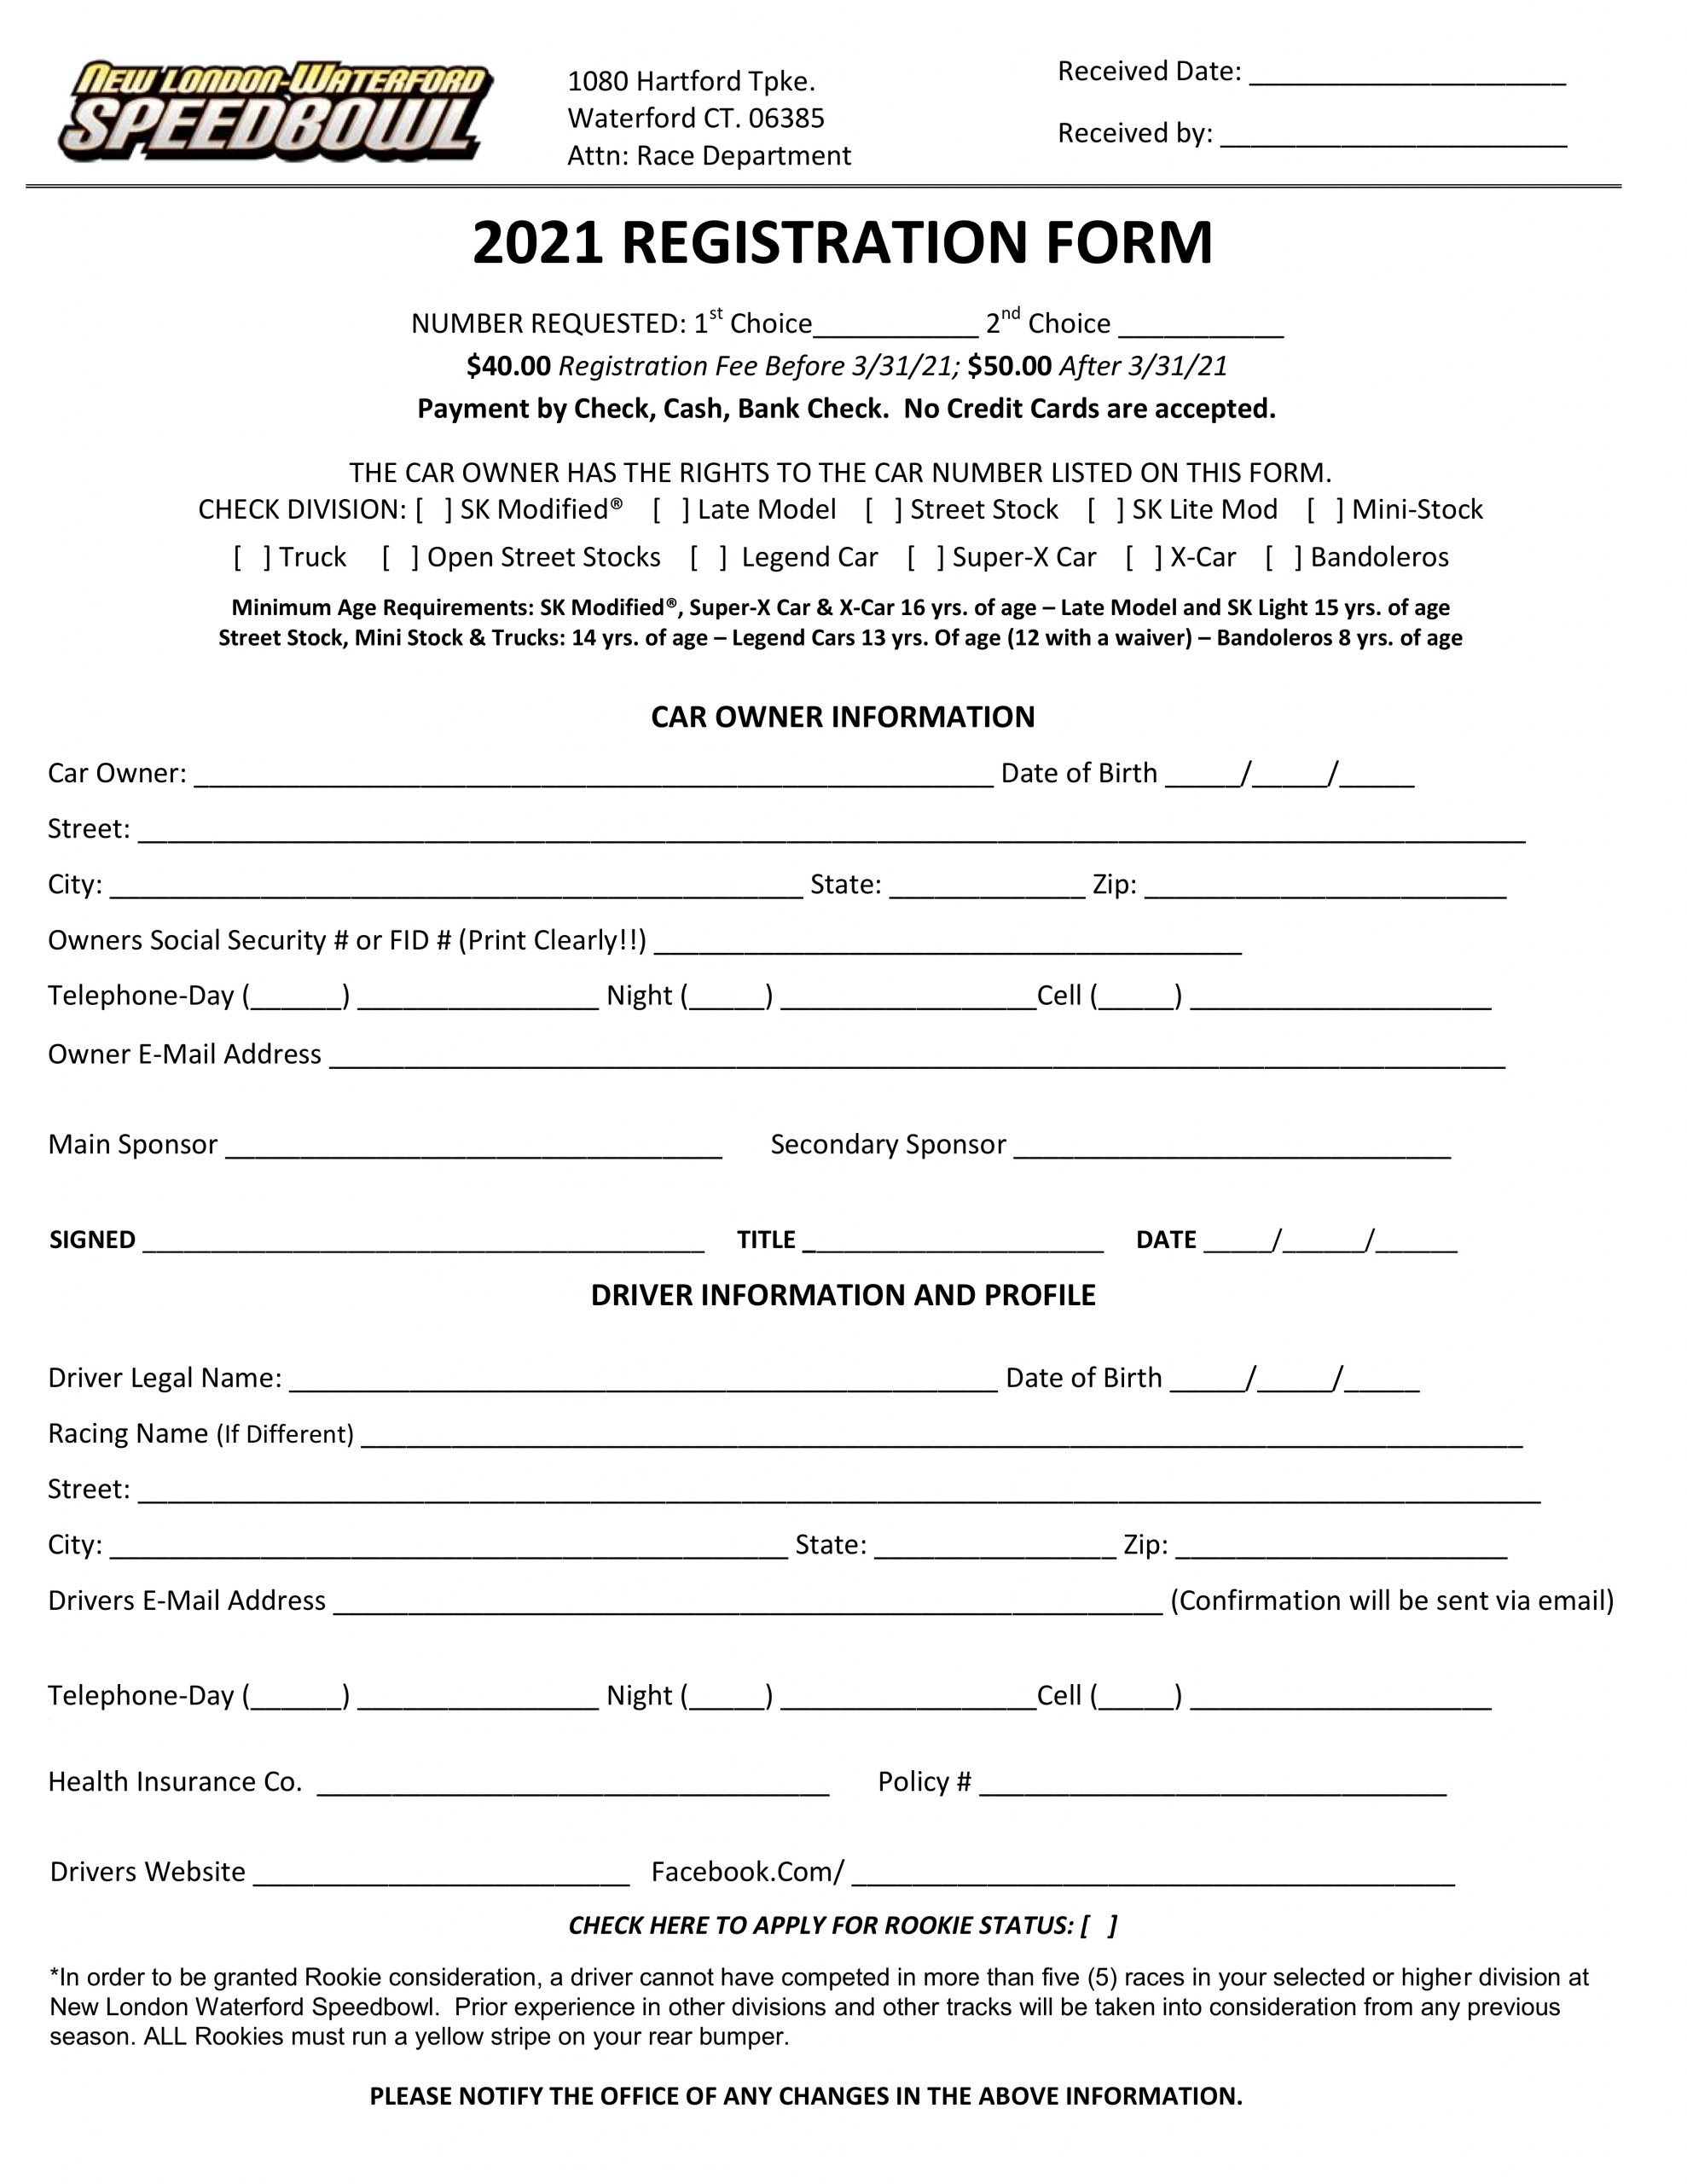 2021-Registration Form-NLWS